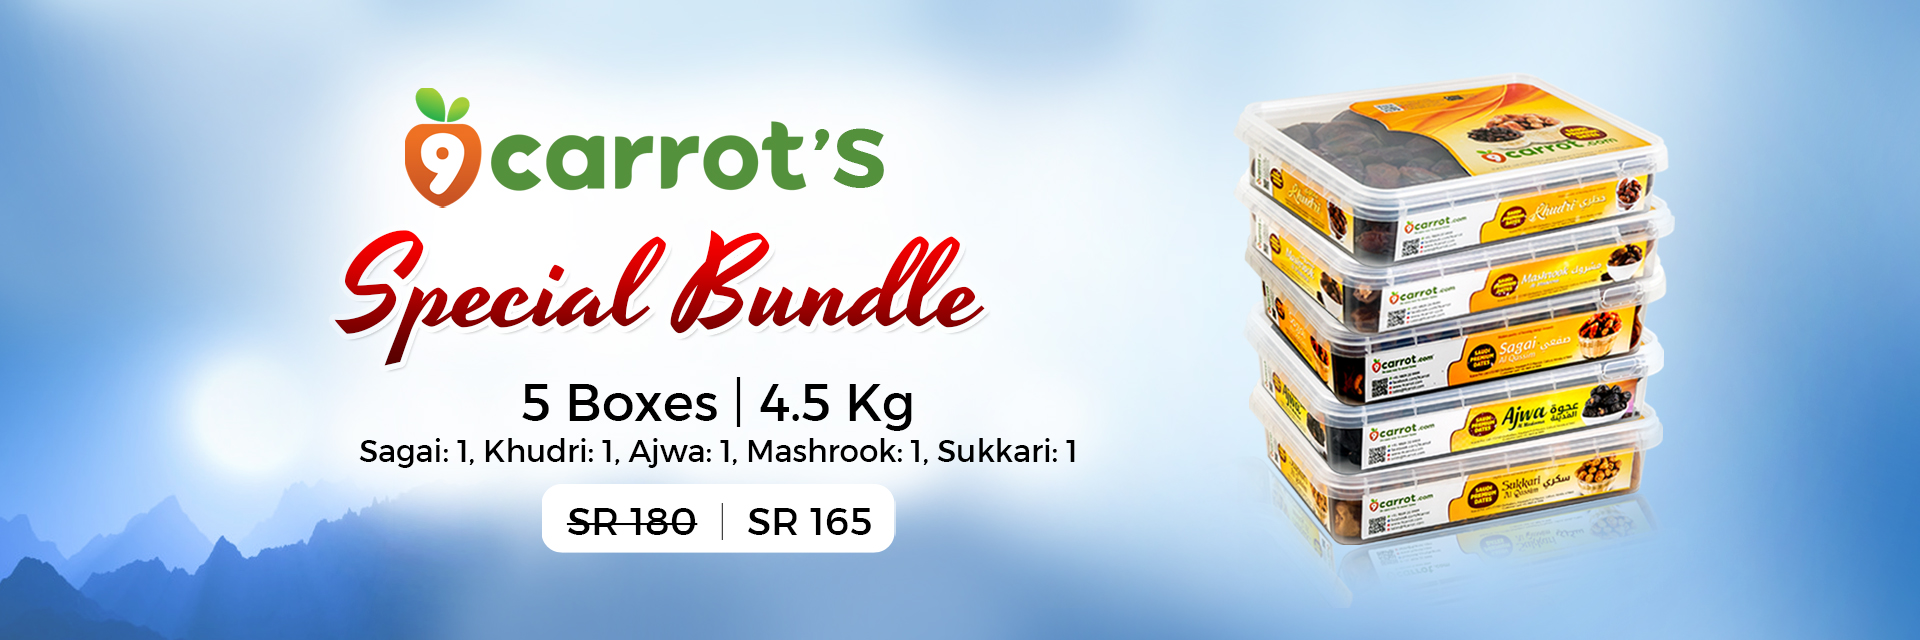 9carrot special Bundle